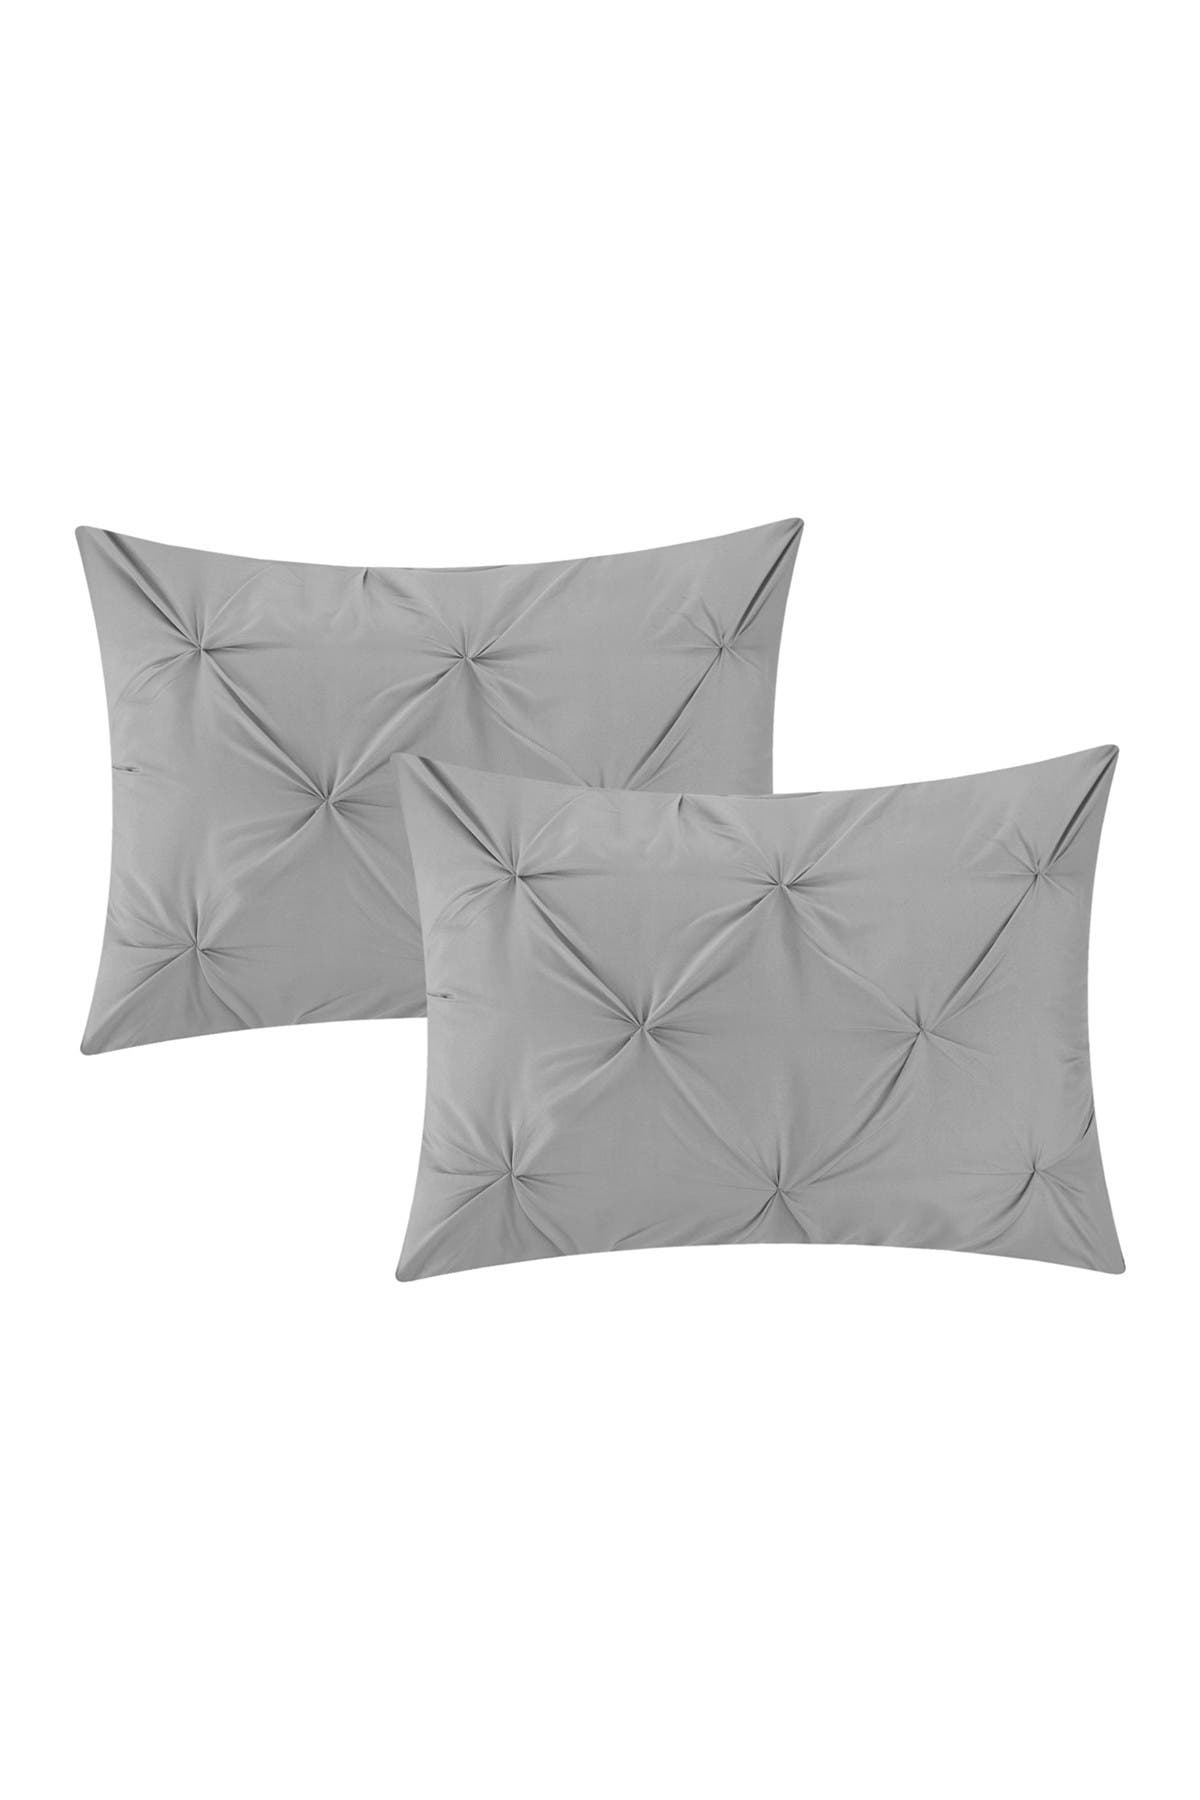 Image of Chic Home Bedding Salvatore Pinch Pleated, Ruffled & Pleated Complete Queen Comforter 10-Piece Set, Silver